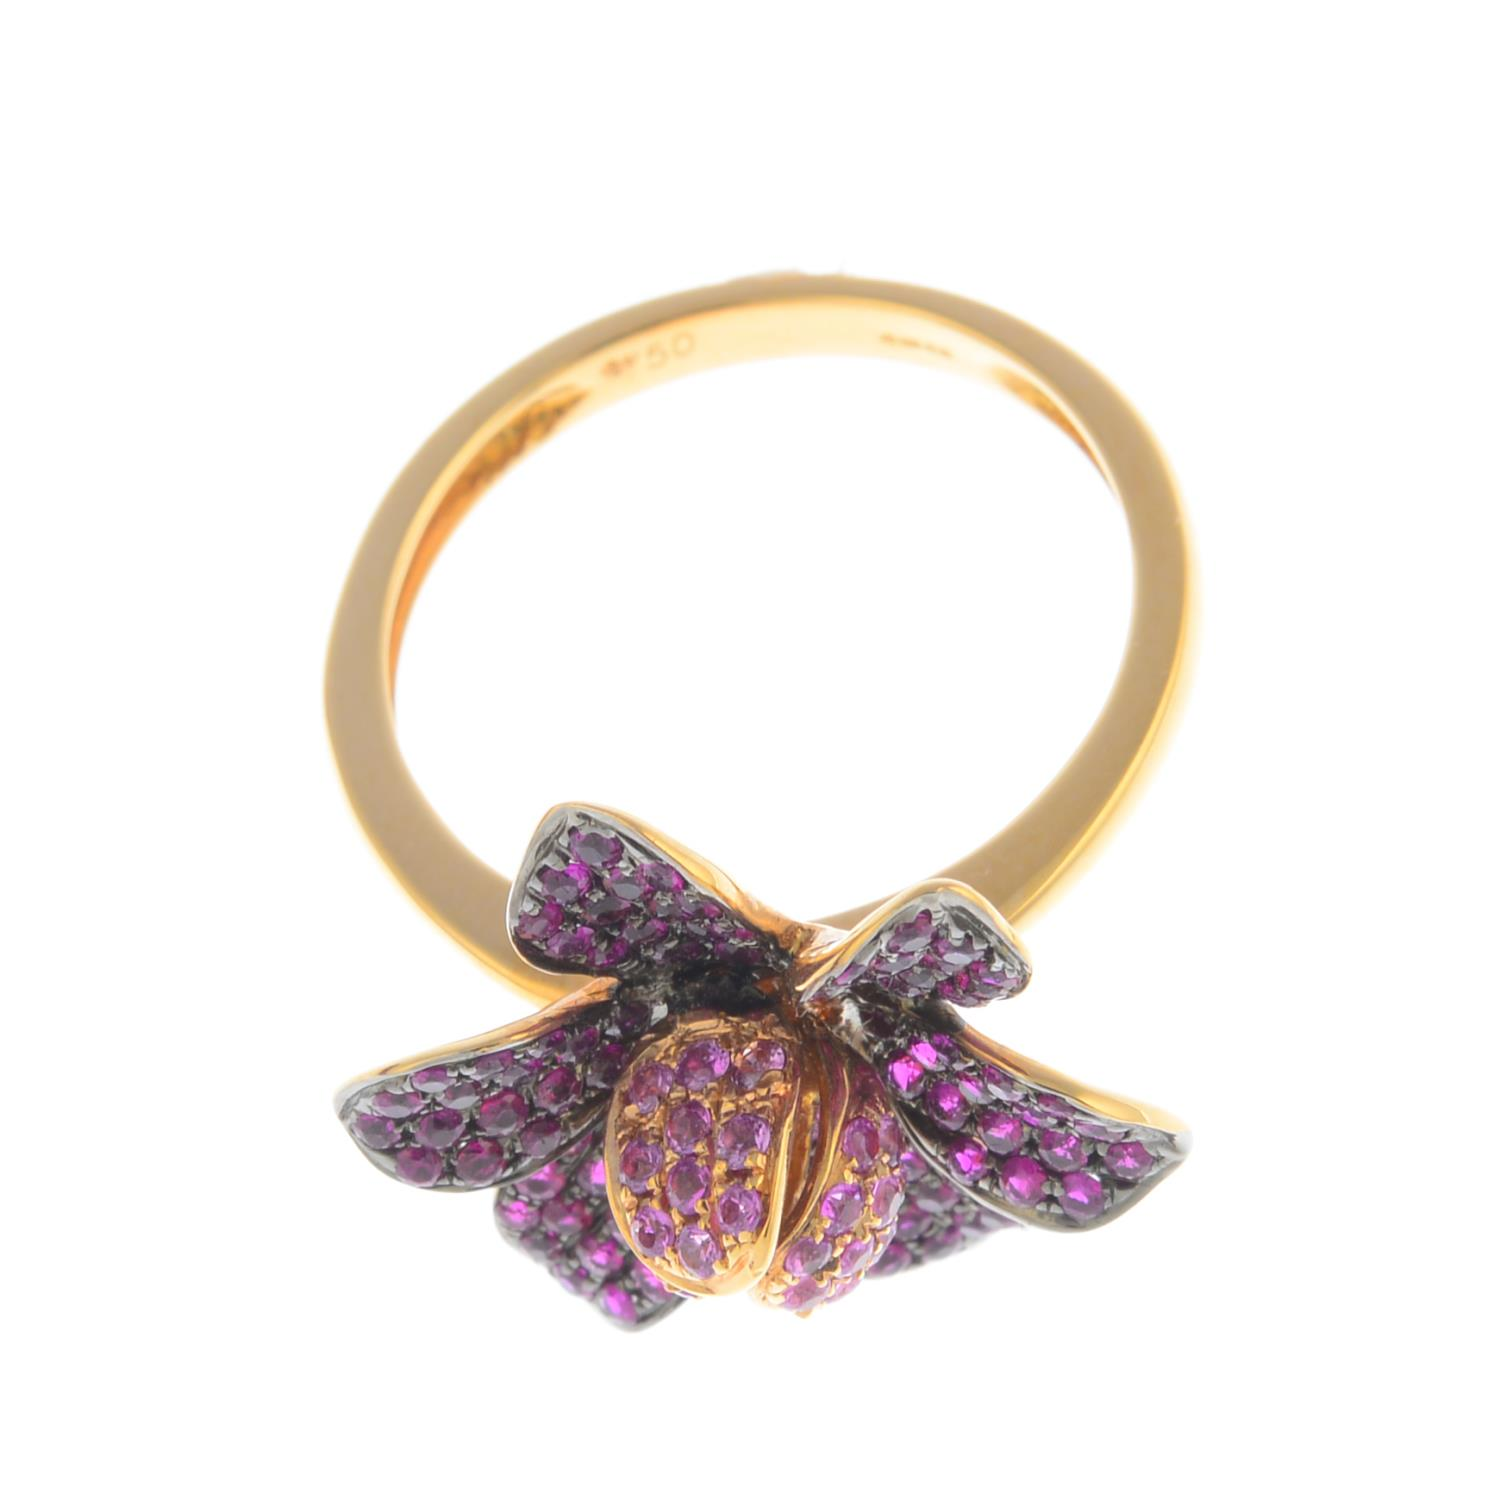 Lot 60 - An 18ct gold pink sapphire and ruby flower ring.